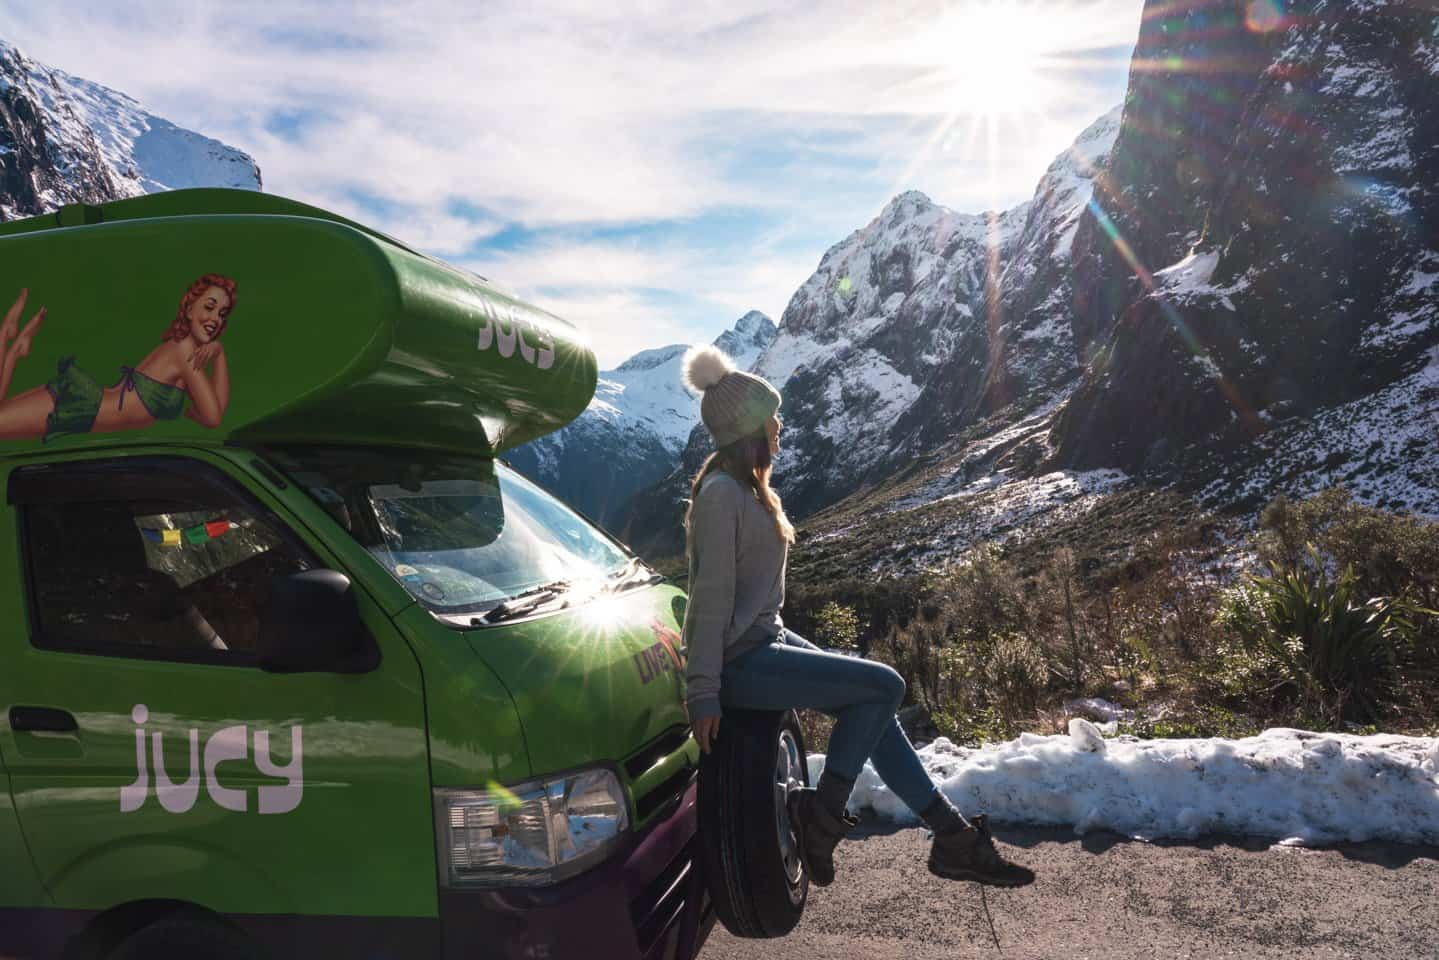 Renting a campervan to travel NZ is the fastest and easiest option.